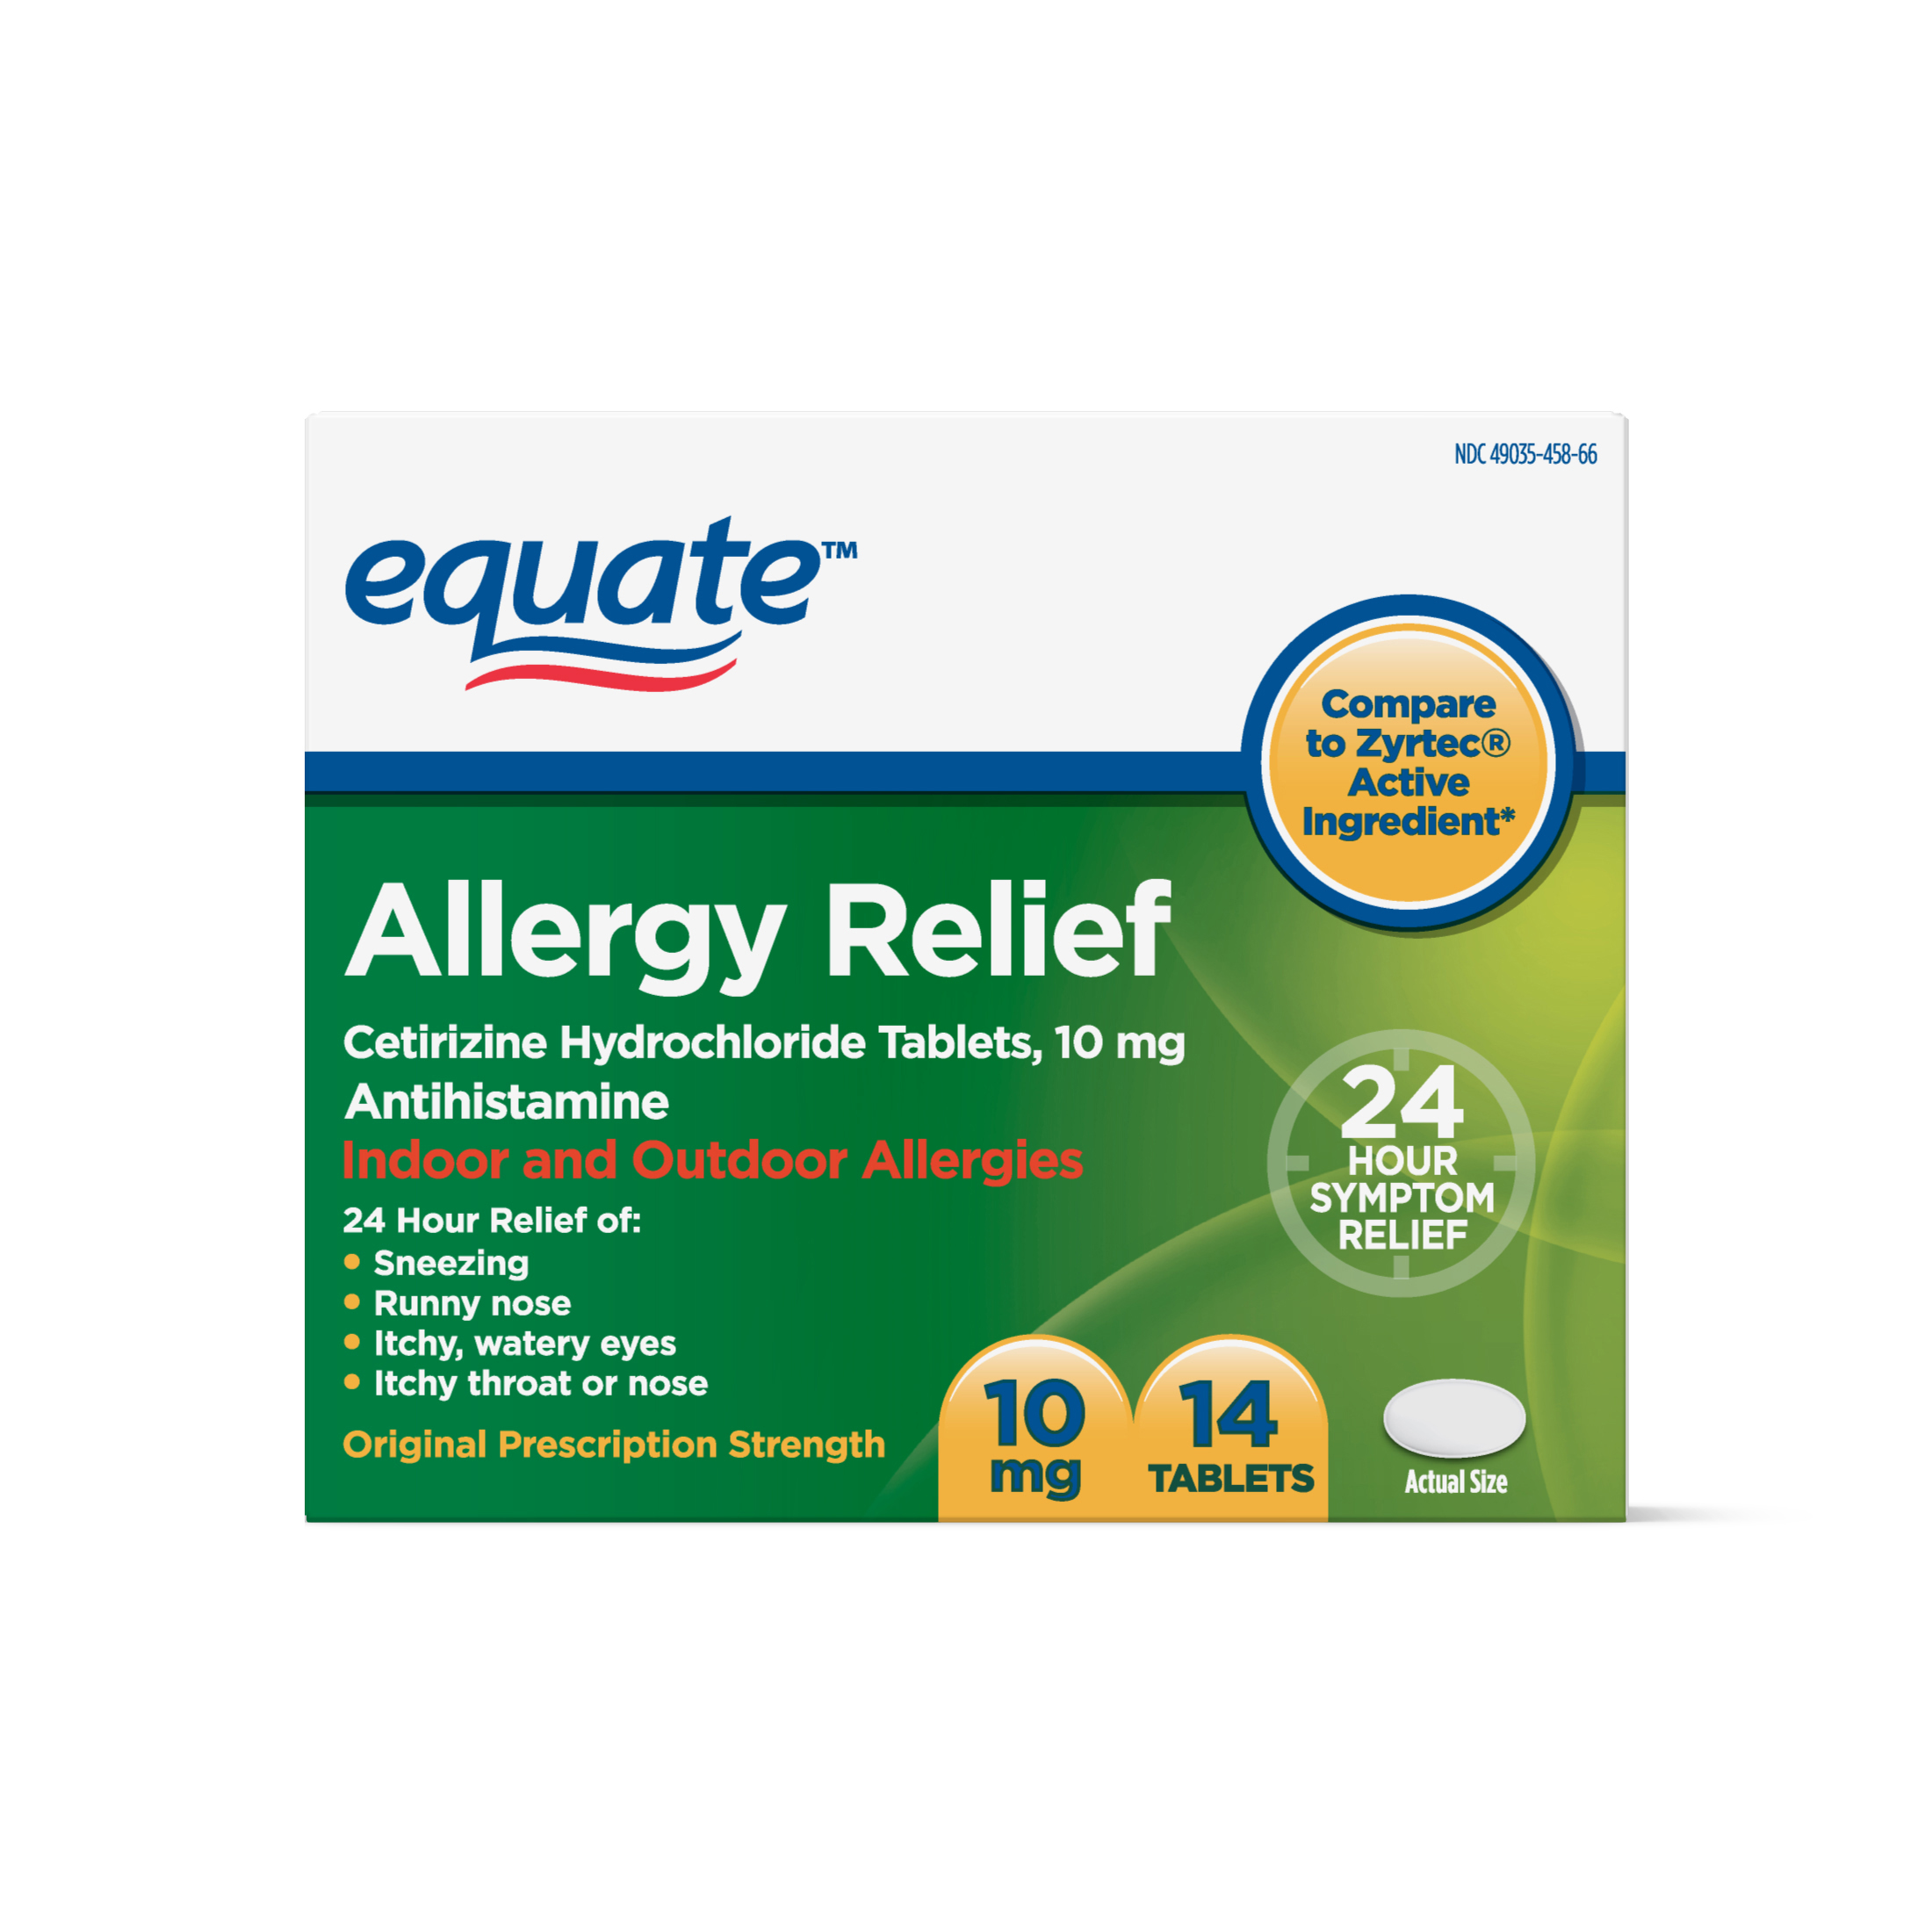 Equate Allergy Relief Certirizine Tablets, 10 mg, 14 Ct